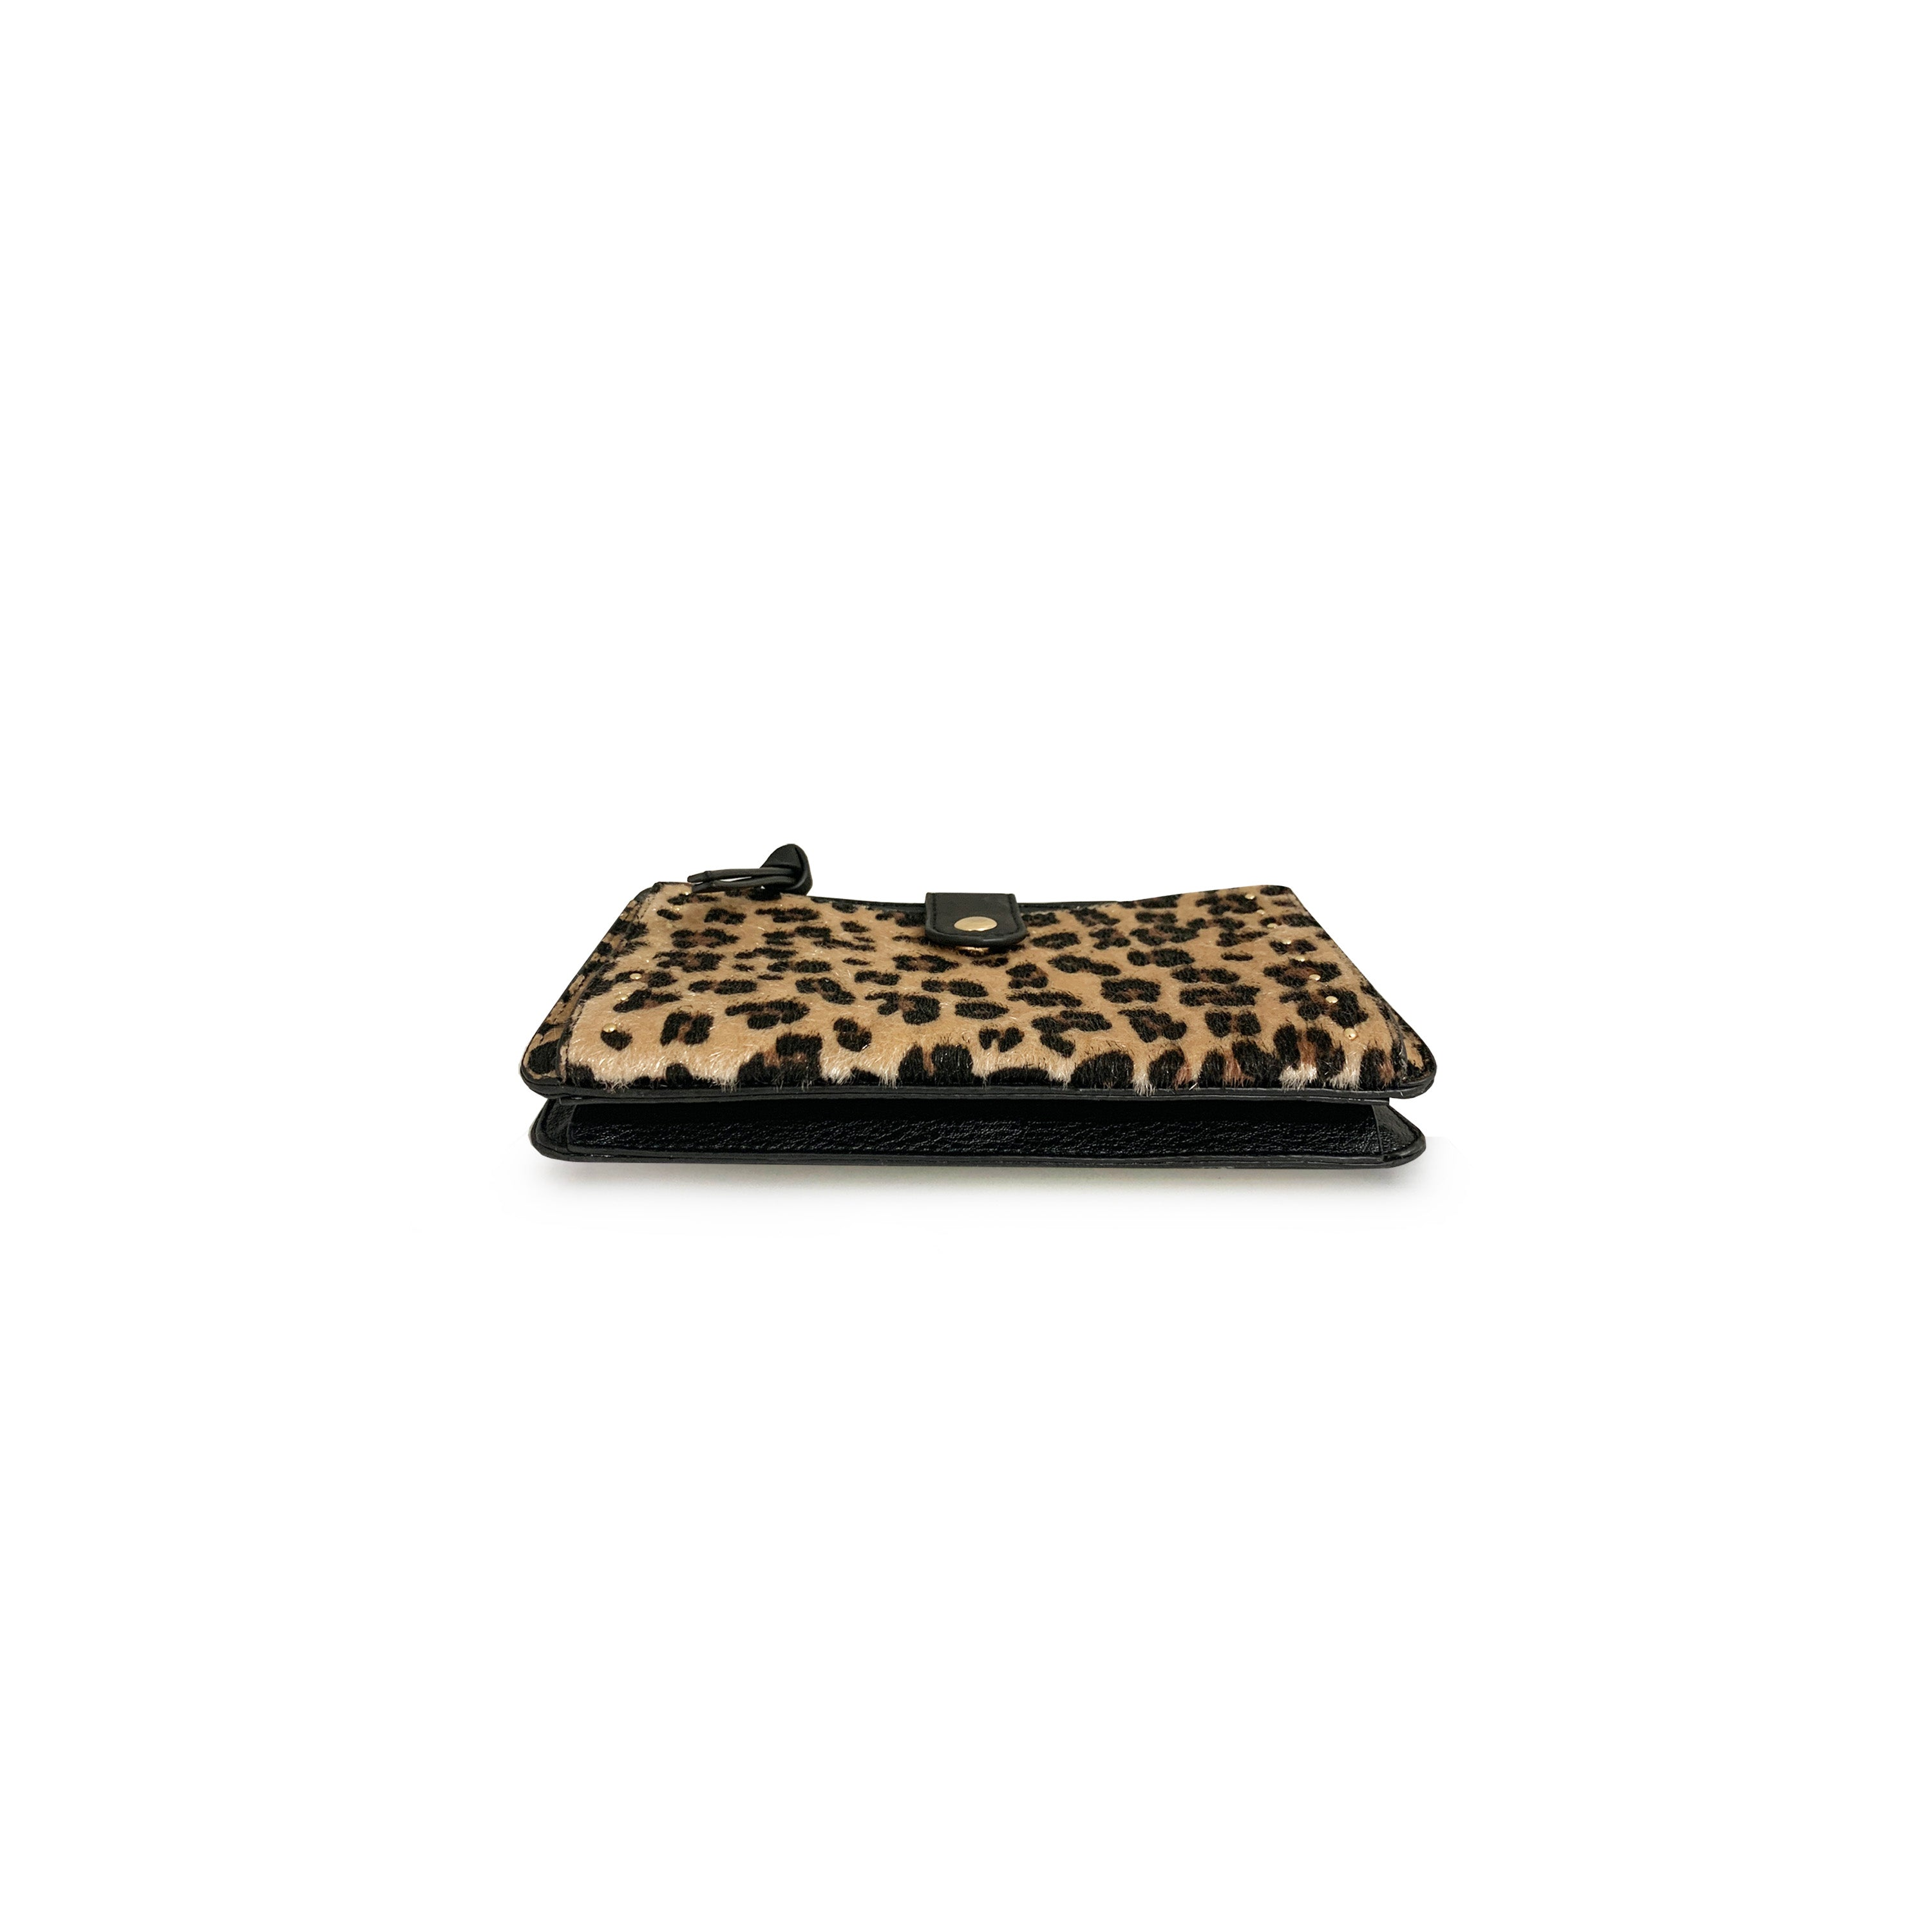 Wallet on a String with Leopard Studded Pocket